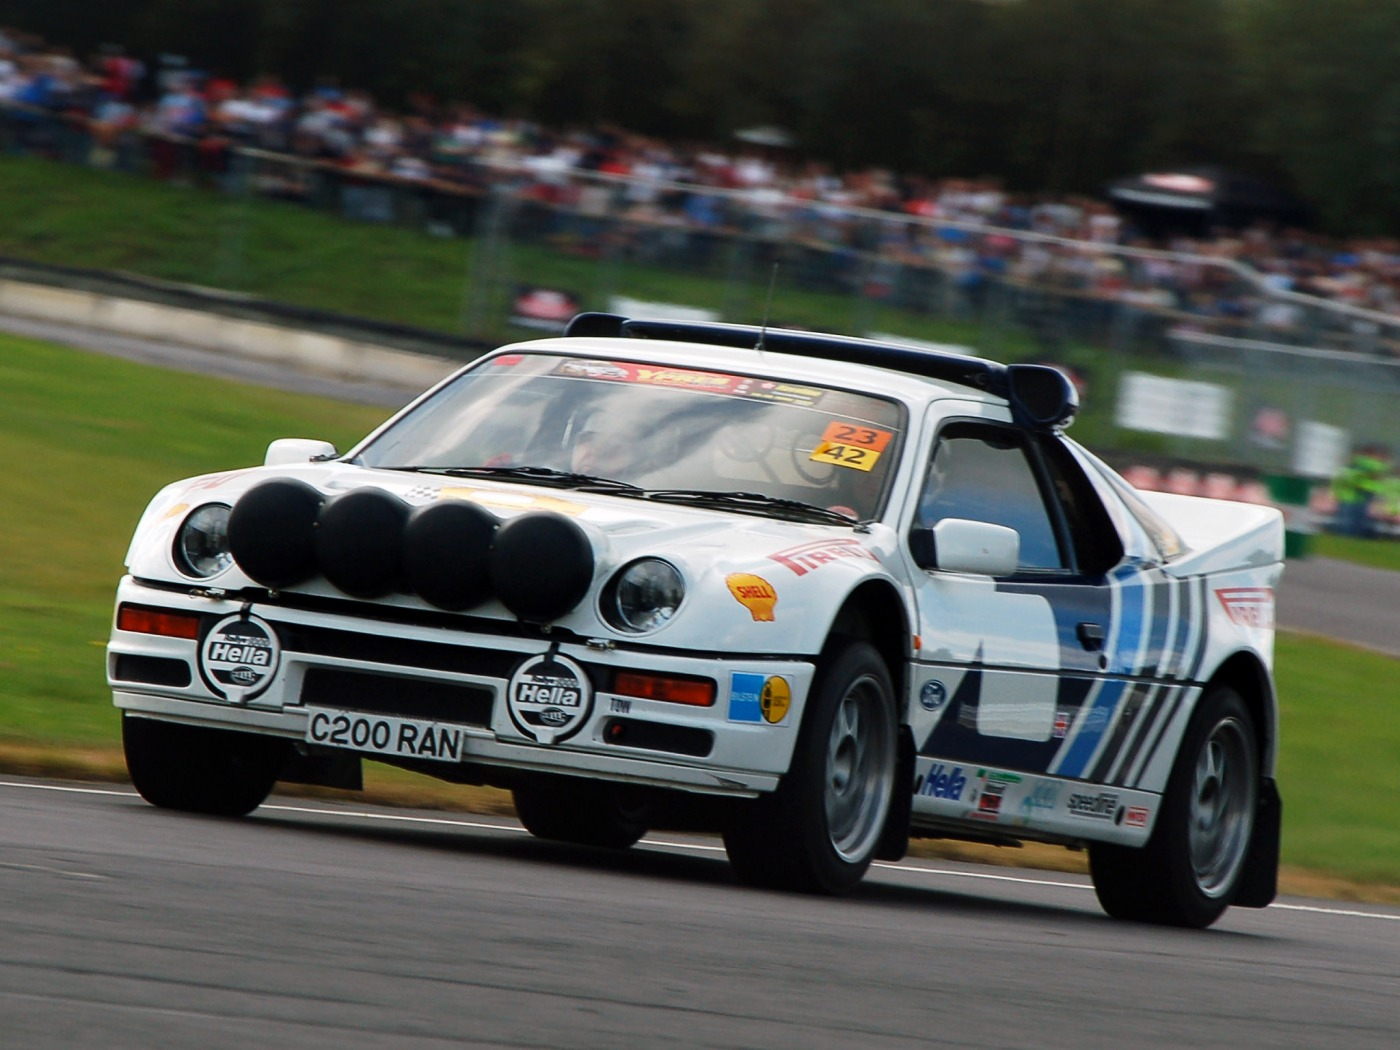 fiat 500 abarth rally car with Group B Rally Cars Are Old School And Awesome on Index2 together with Abarth 127 Concept E Fiat 127 Concept By David Obendorfer also 2018 Fiat Panda moreover Collectible Classic 1968 1985 Fiat 124 Spider additionally Grande punto abarth 01.